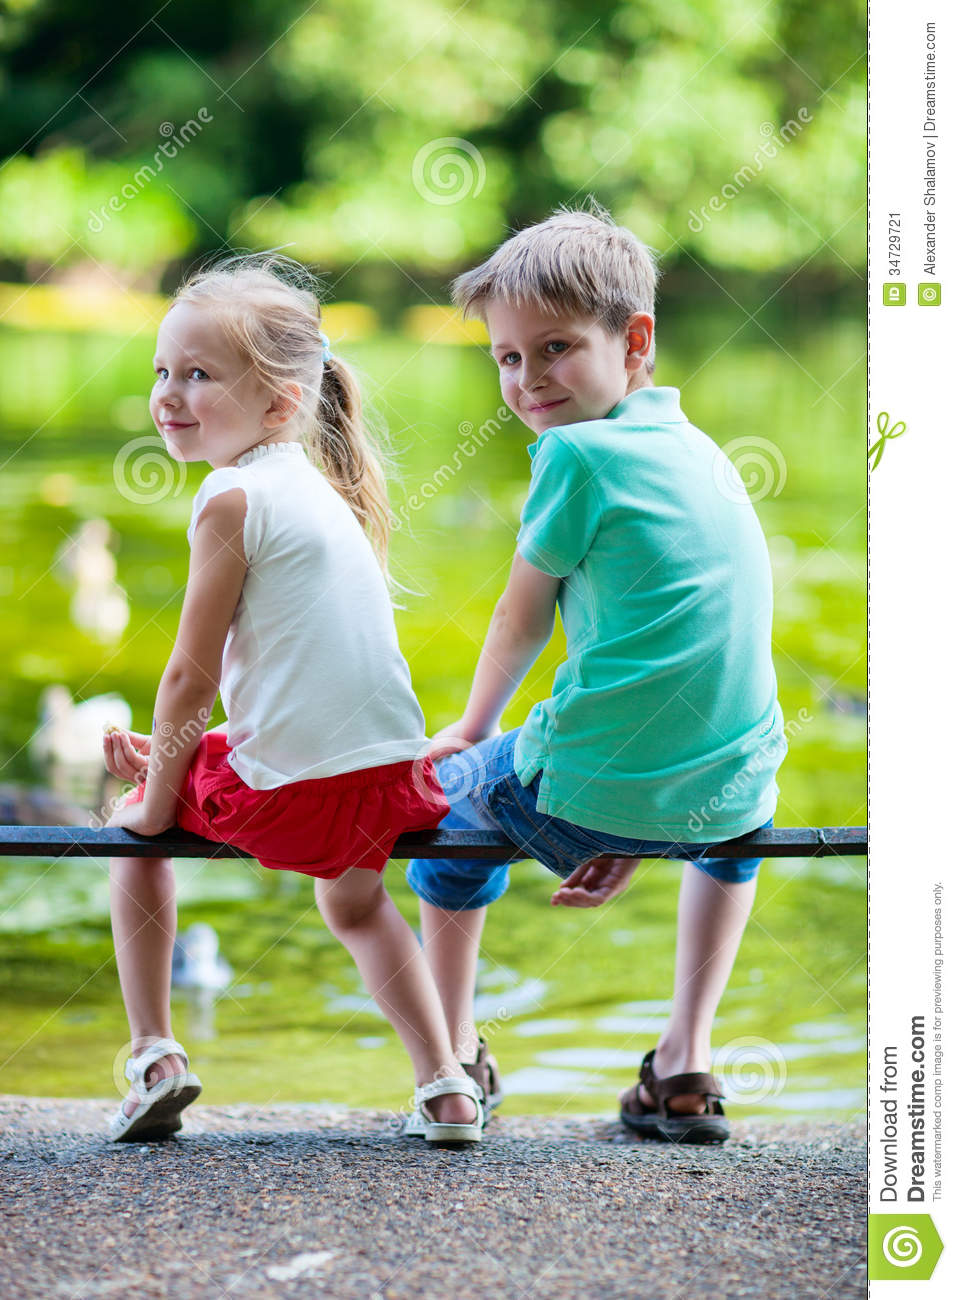 Kids in images 99